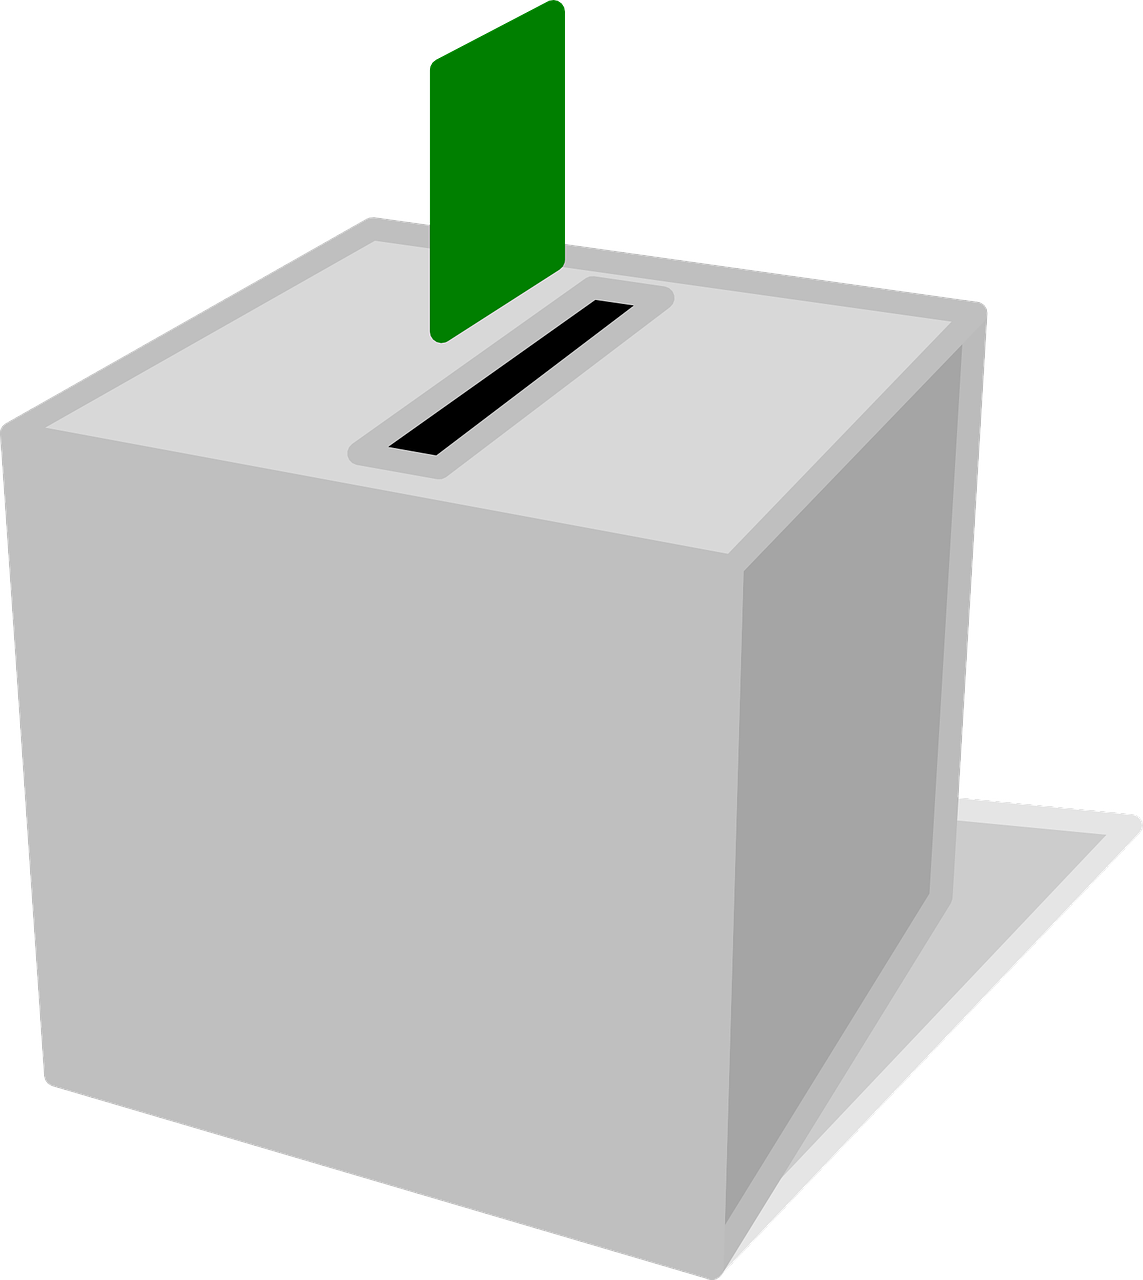 Rethinking hoa rights independent. Voting clipart majority